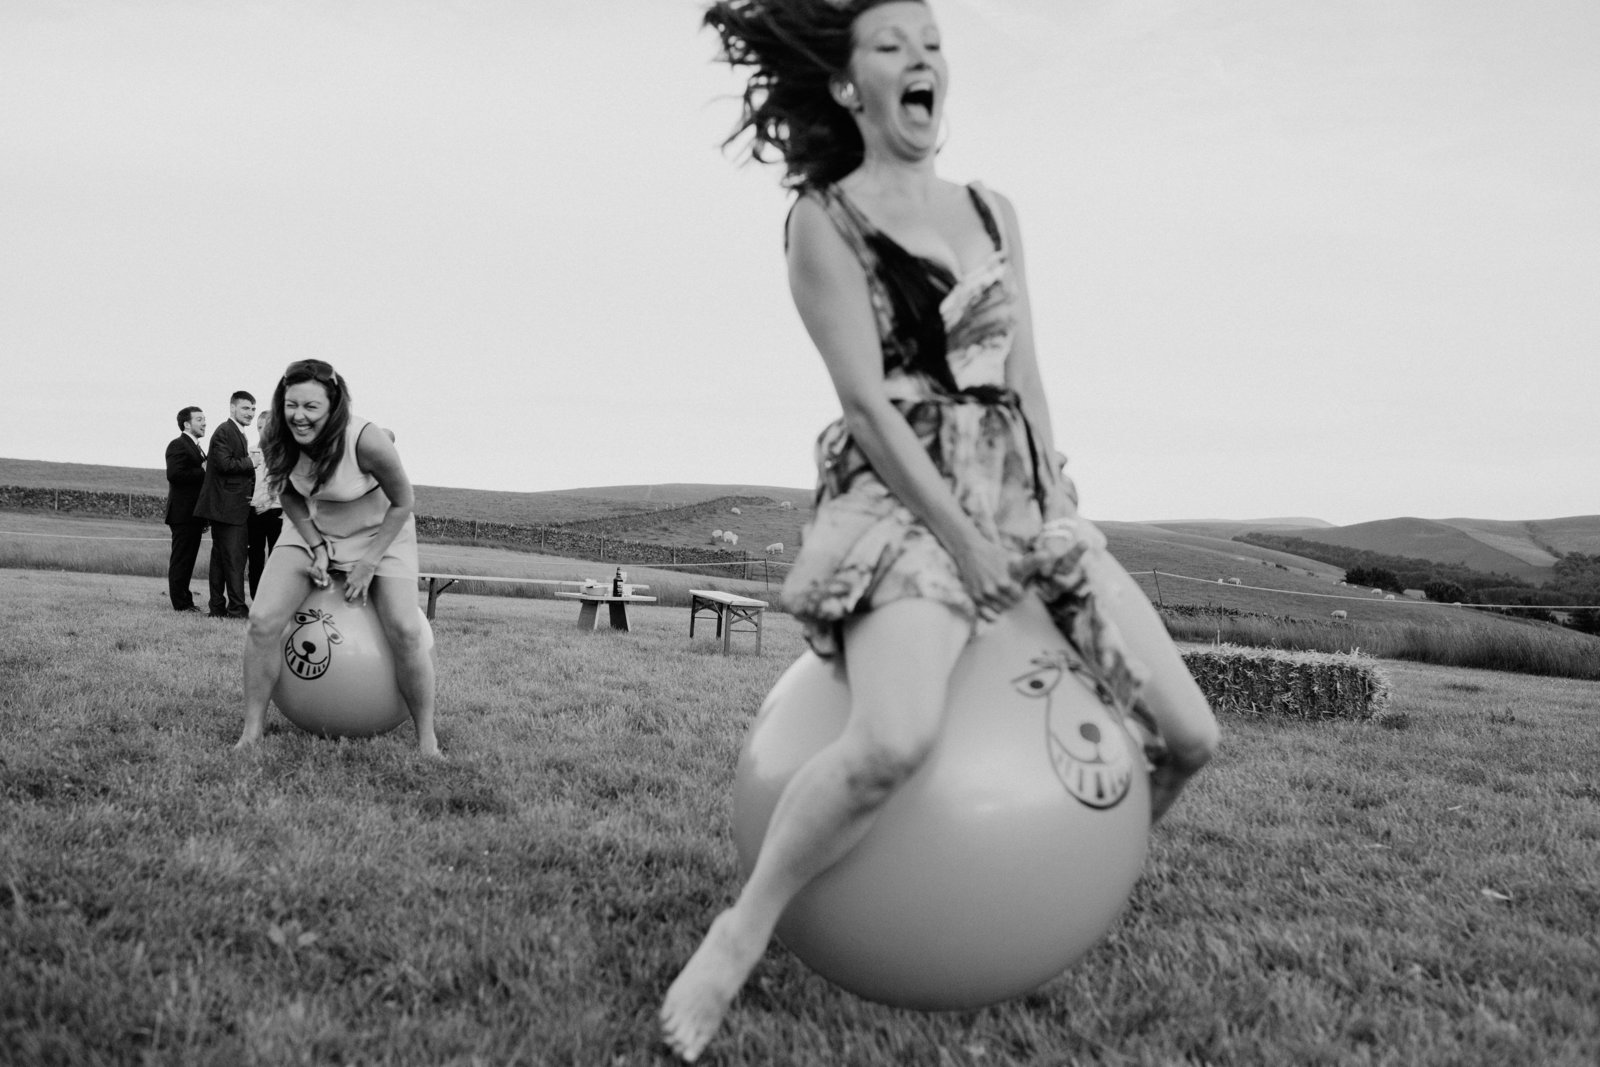 Festival style wedding with bouncy hoppers. Alternative documentary wedding photographer